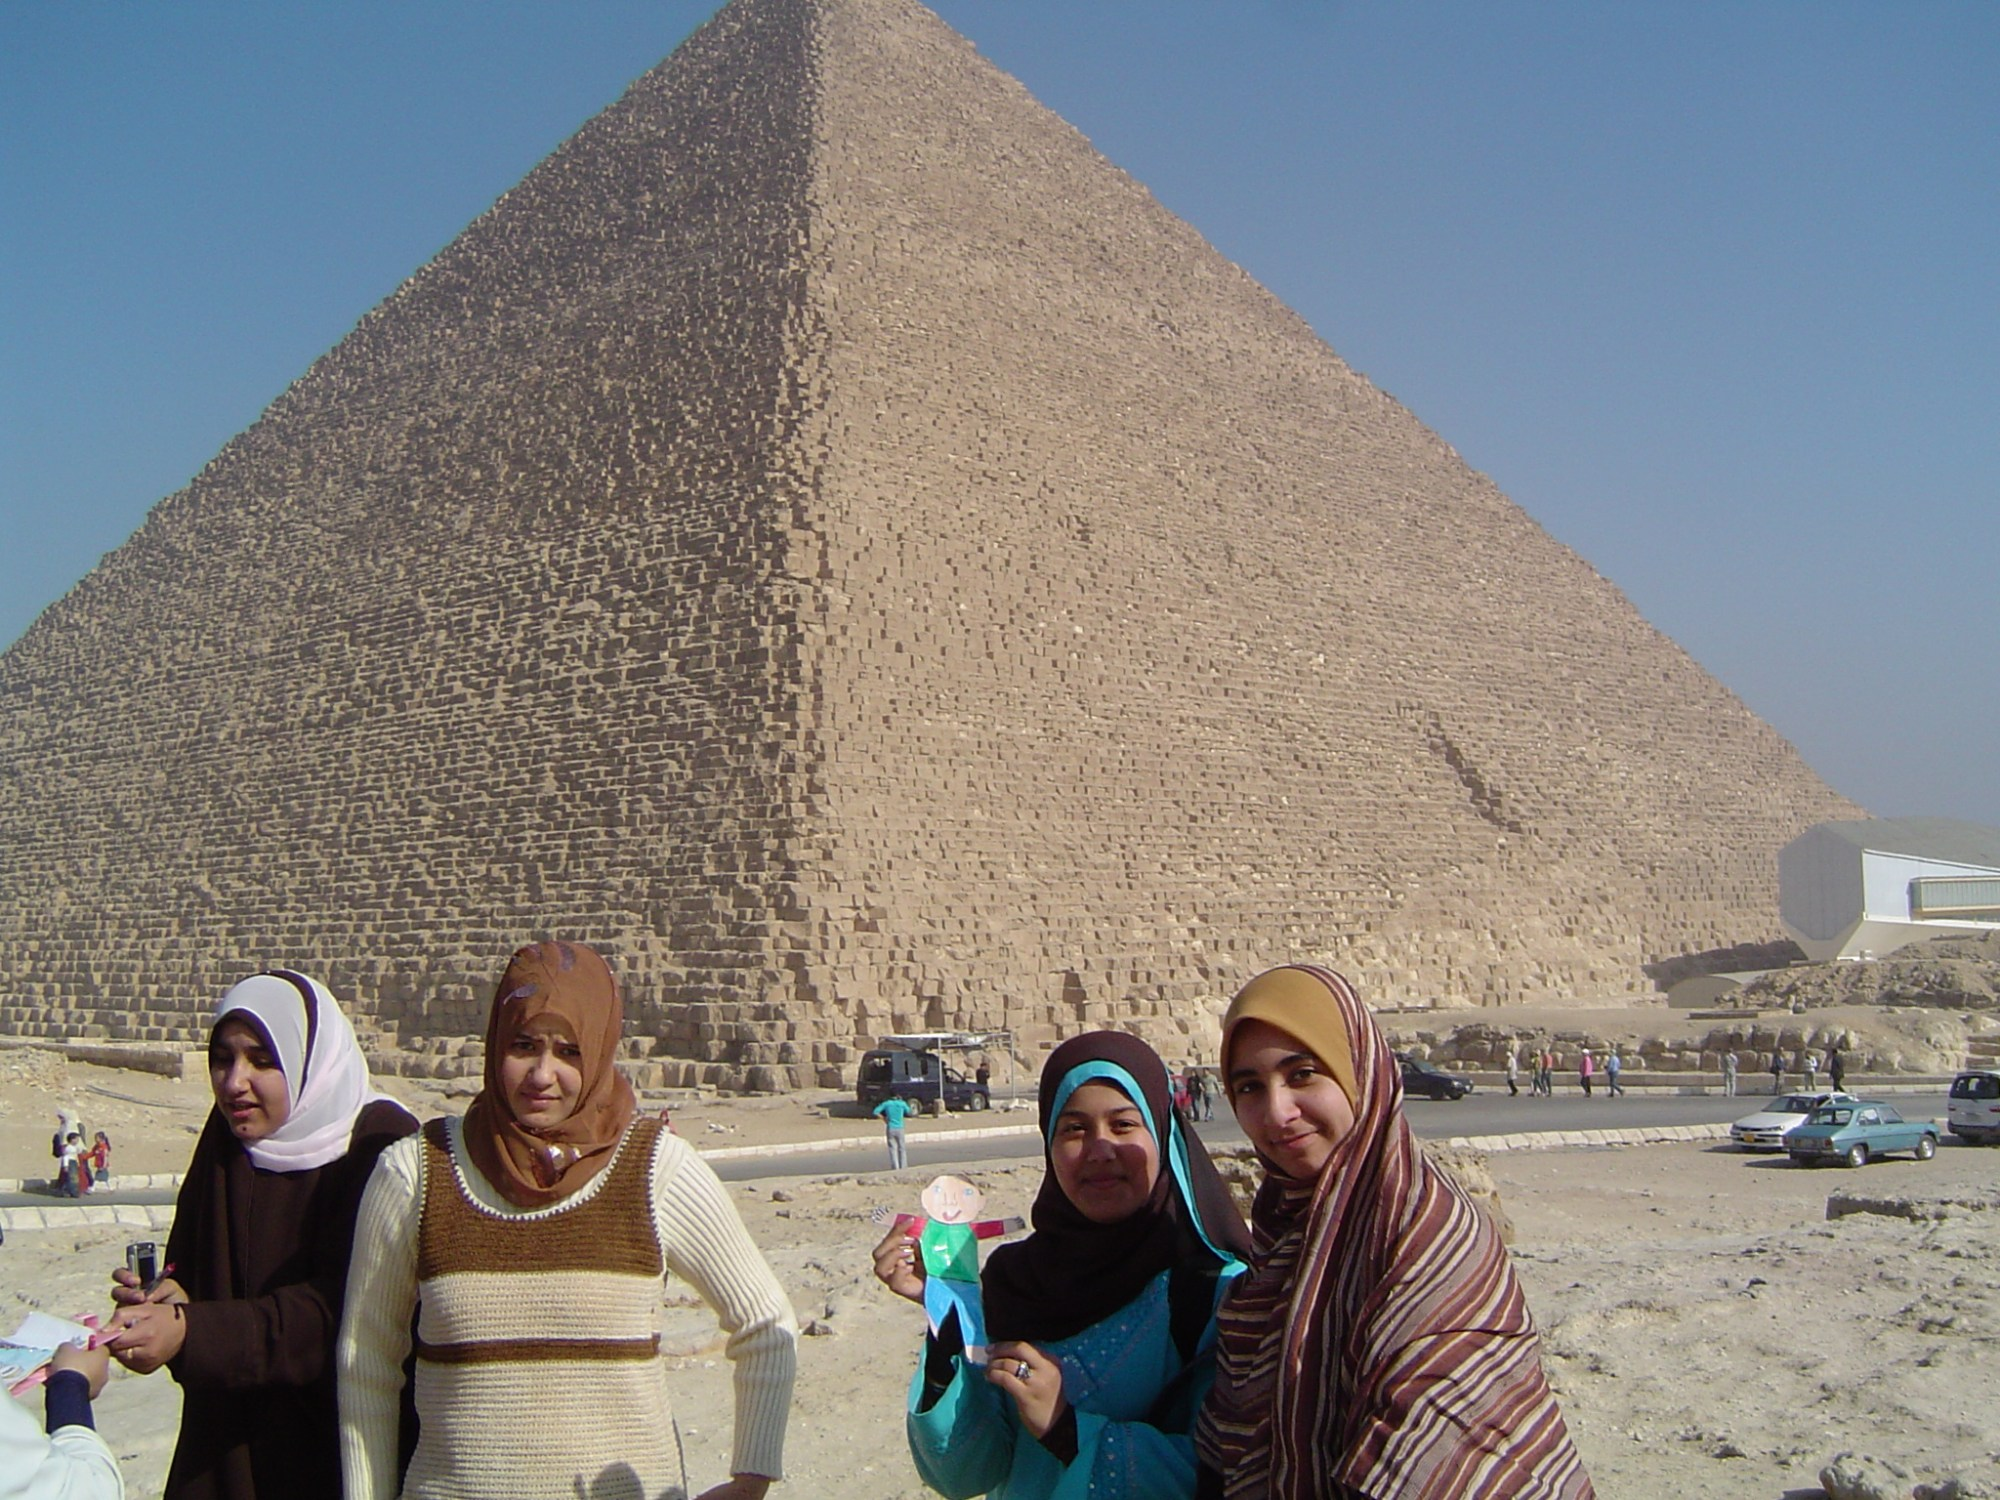 hight resolution of at the pyramids in egypt